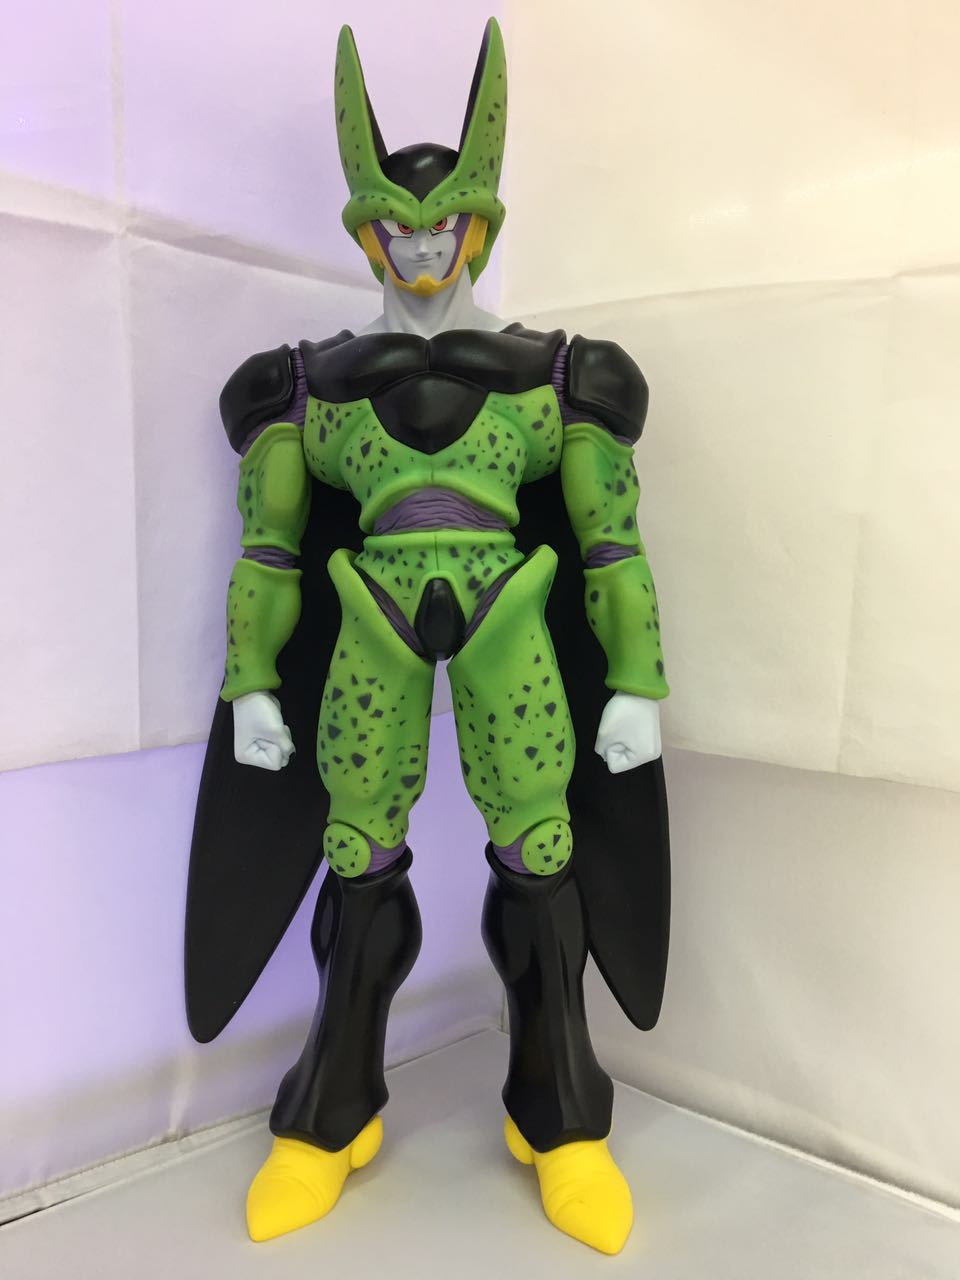 Anime Dragon Ball Z Perfect Cell Super Big PVC Action Figure Collectible Model Toy 48cm KT3906 dragon ball z super big size super son goku pvc action figure collectible model toy 28cm kt3936